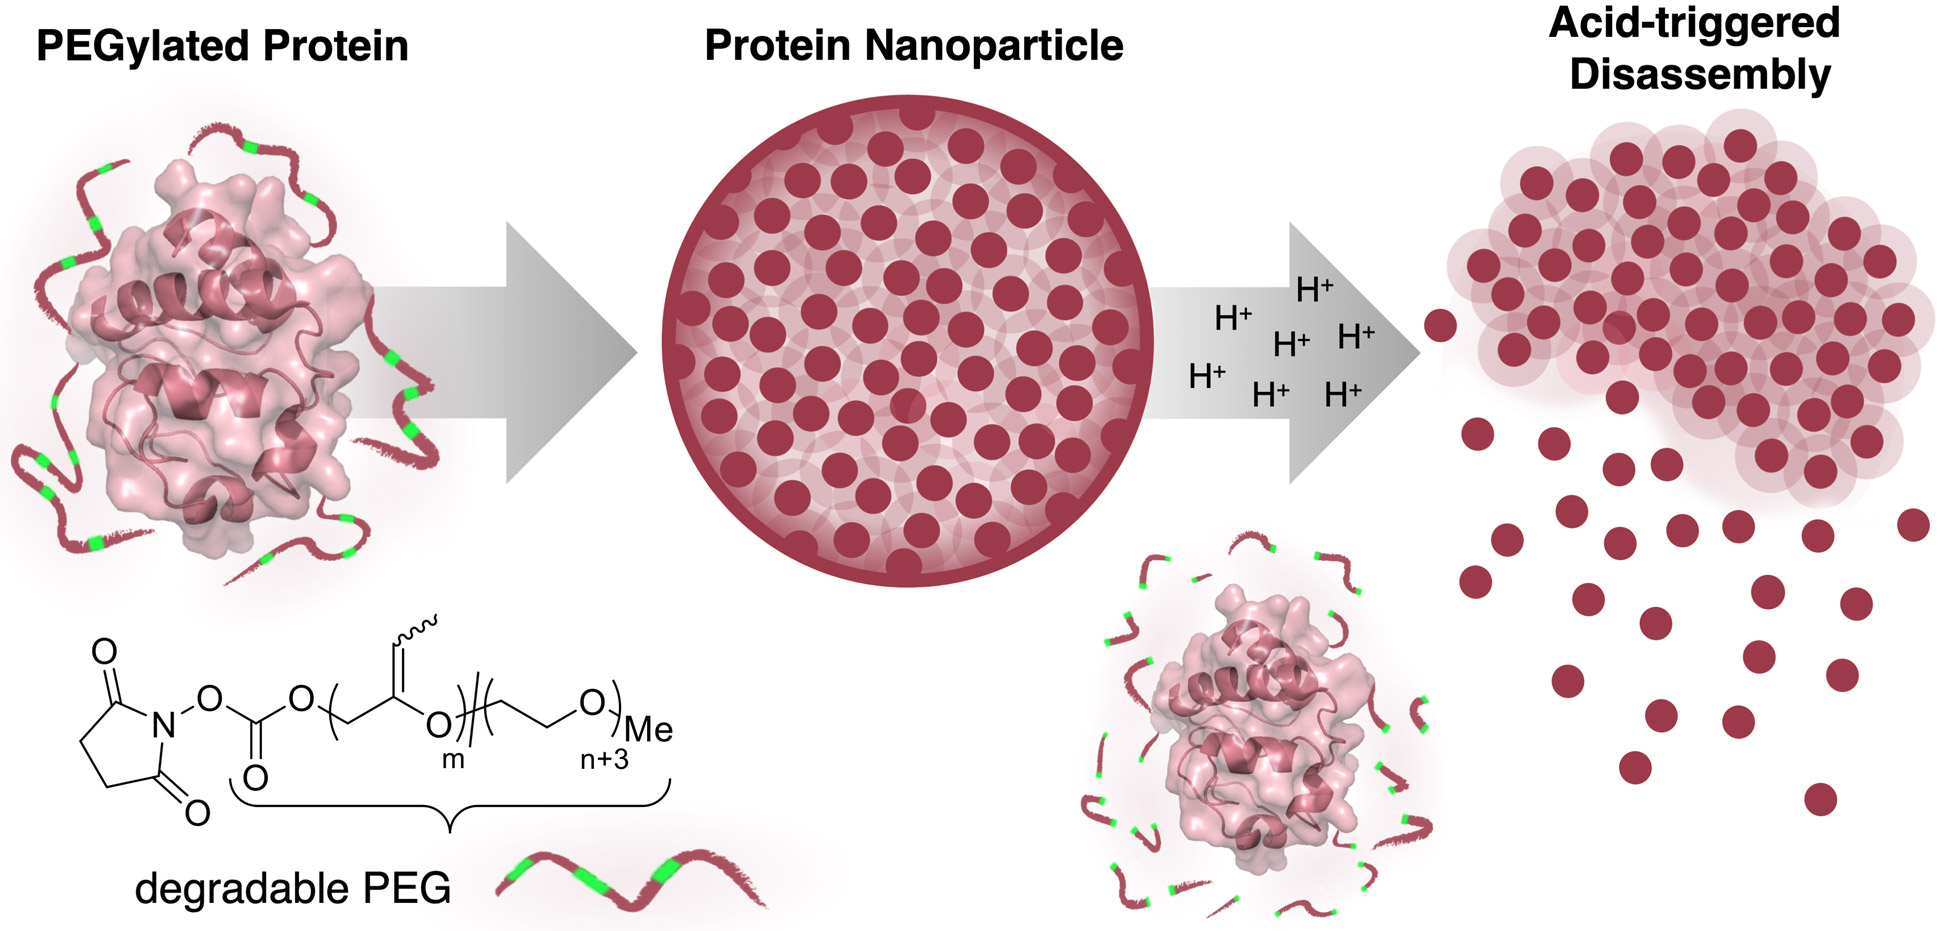 pH-Responsive protein nanoparticles via conjugation of degradable PEG to the surface of cytochrome c